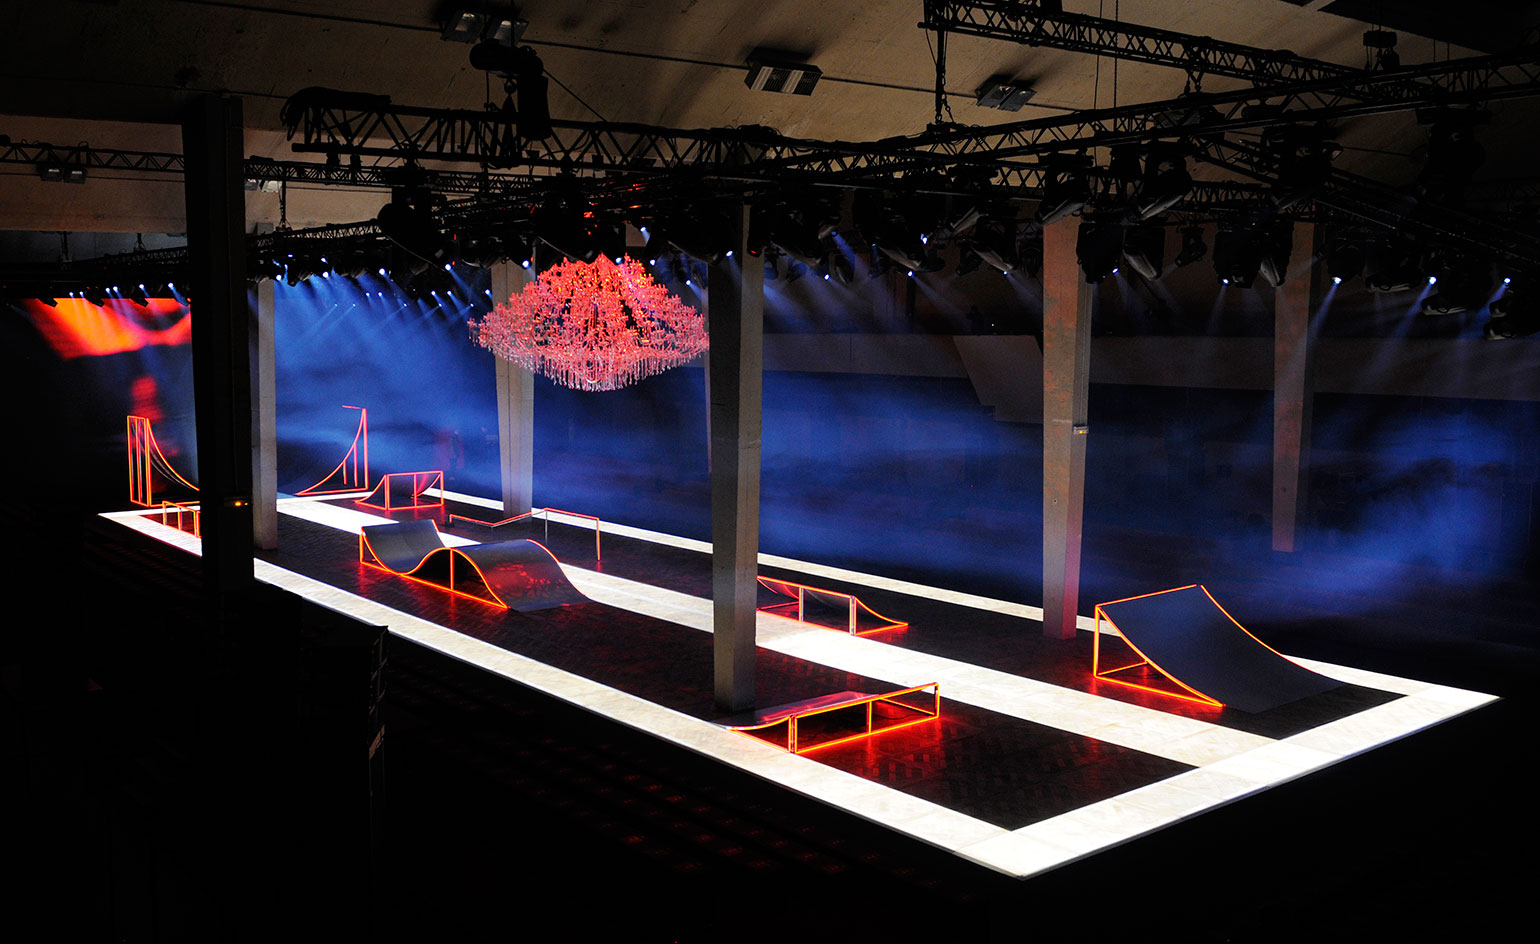 Men 39 s s s 2016 top fashion show venues wallpaper - Fashion show stage design architecture plans ...